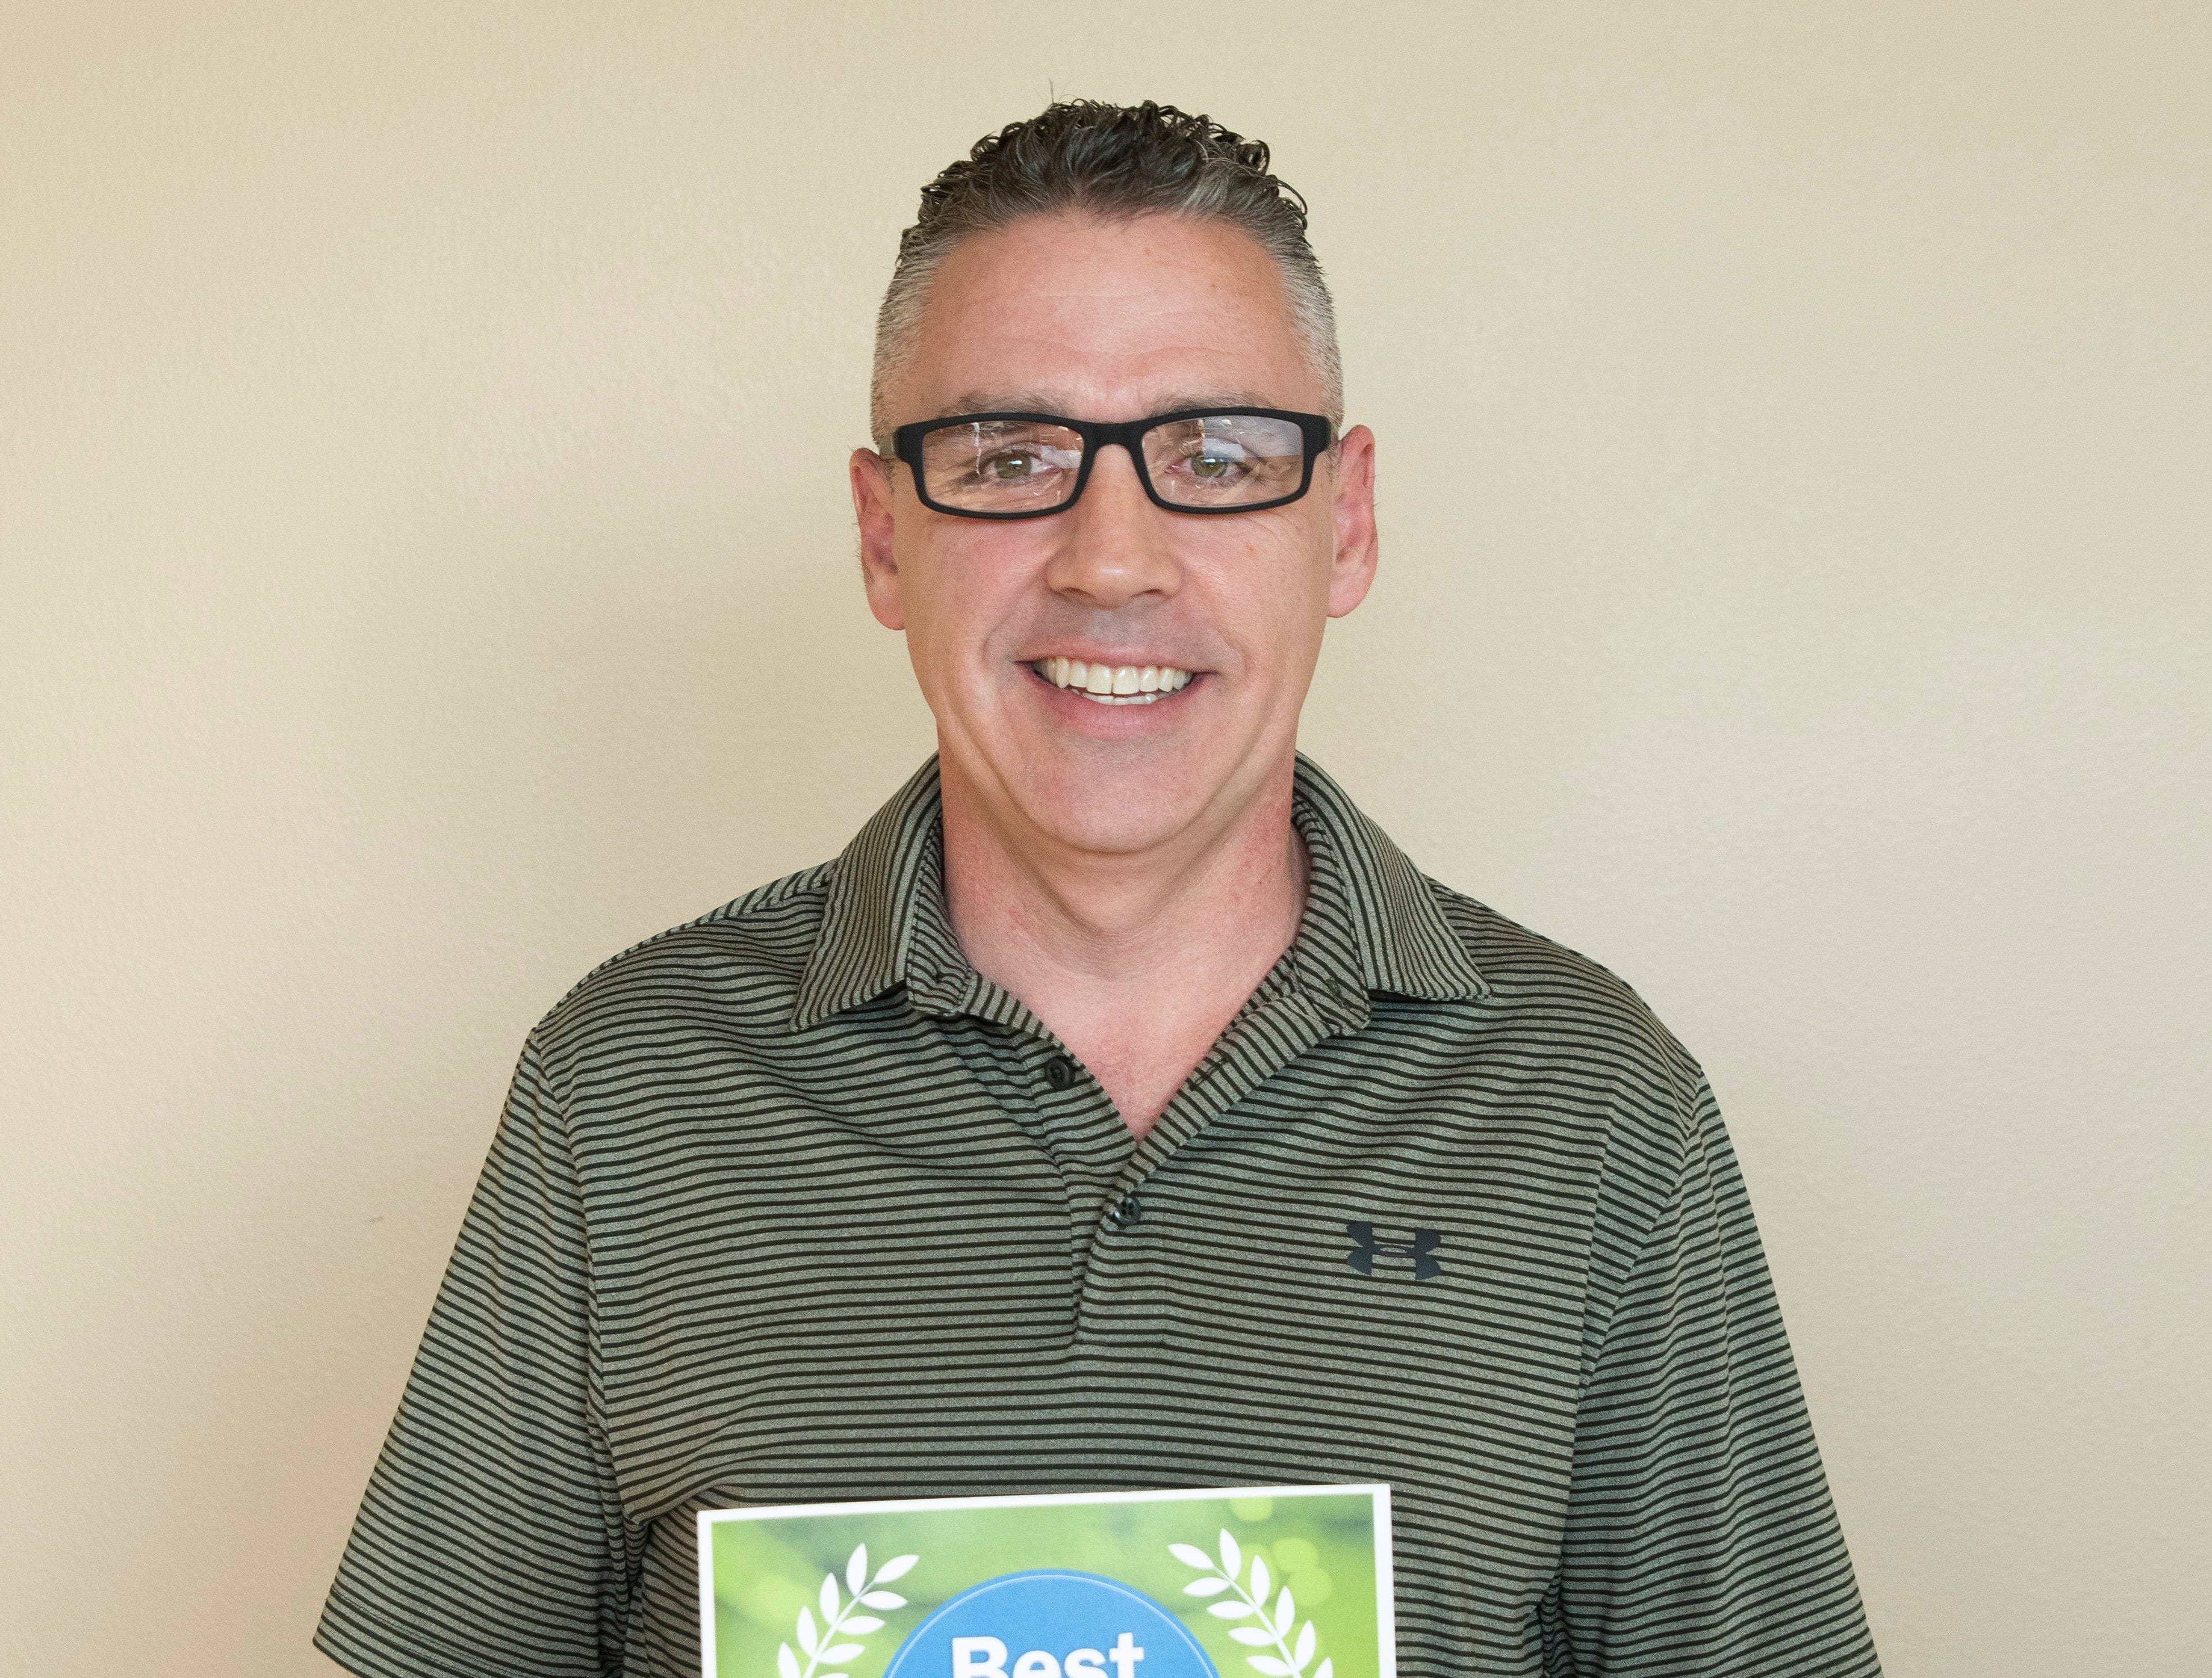 Aspen Pain Clinic won silver for Best Massage in the 2019 Best of the Mid-Valley.